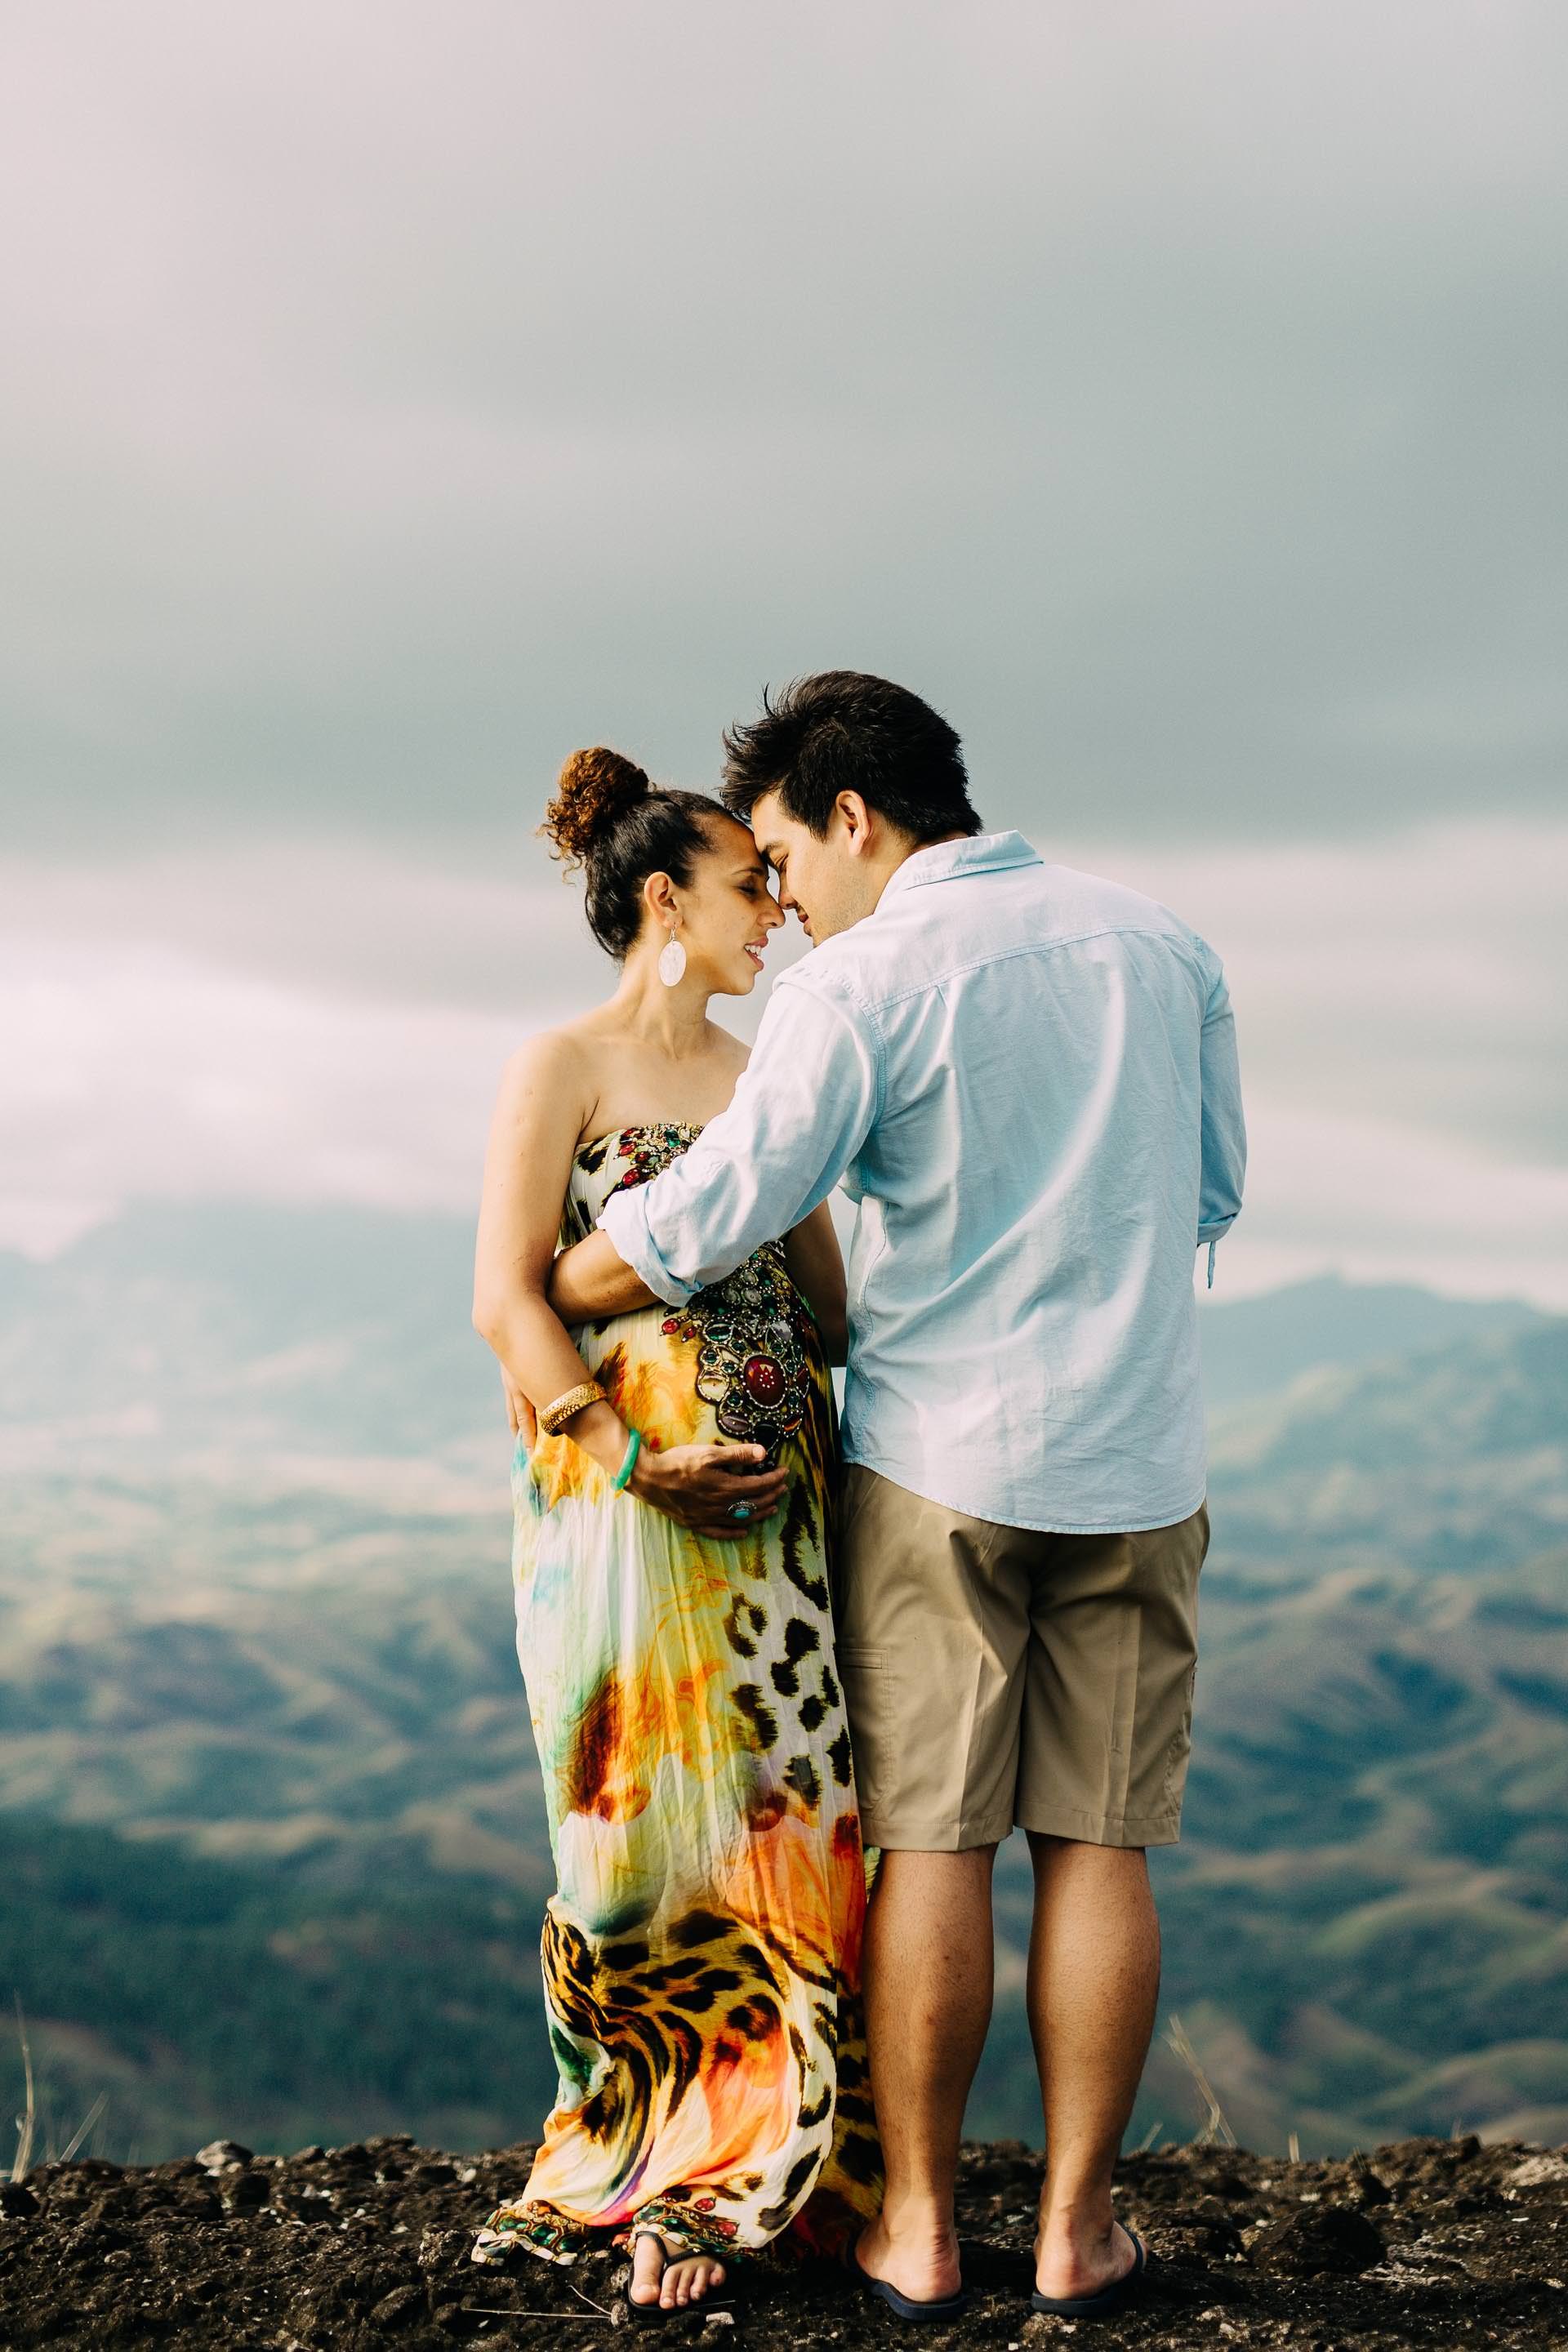 a touching moment during the engagement session